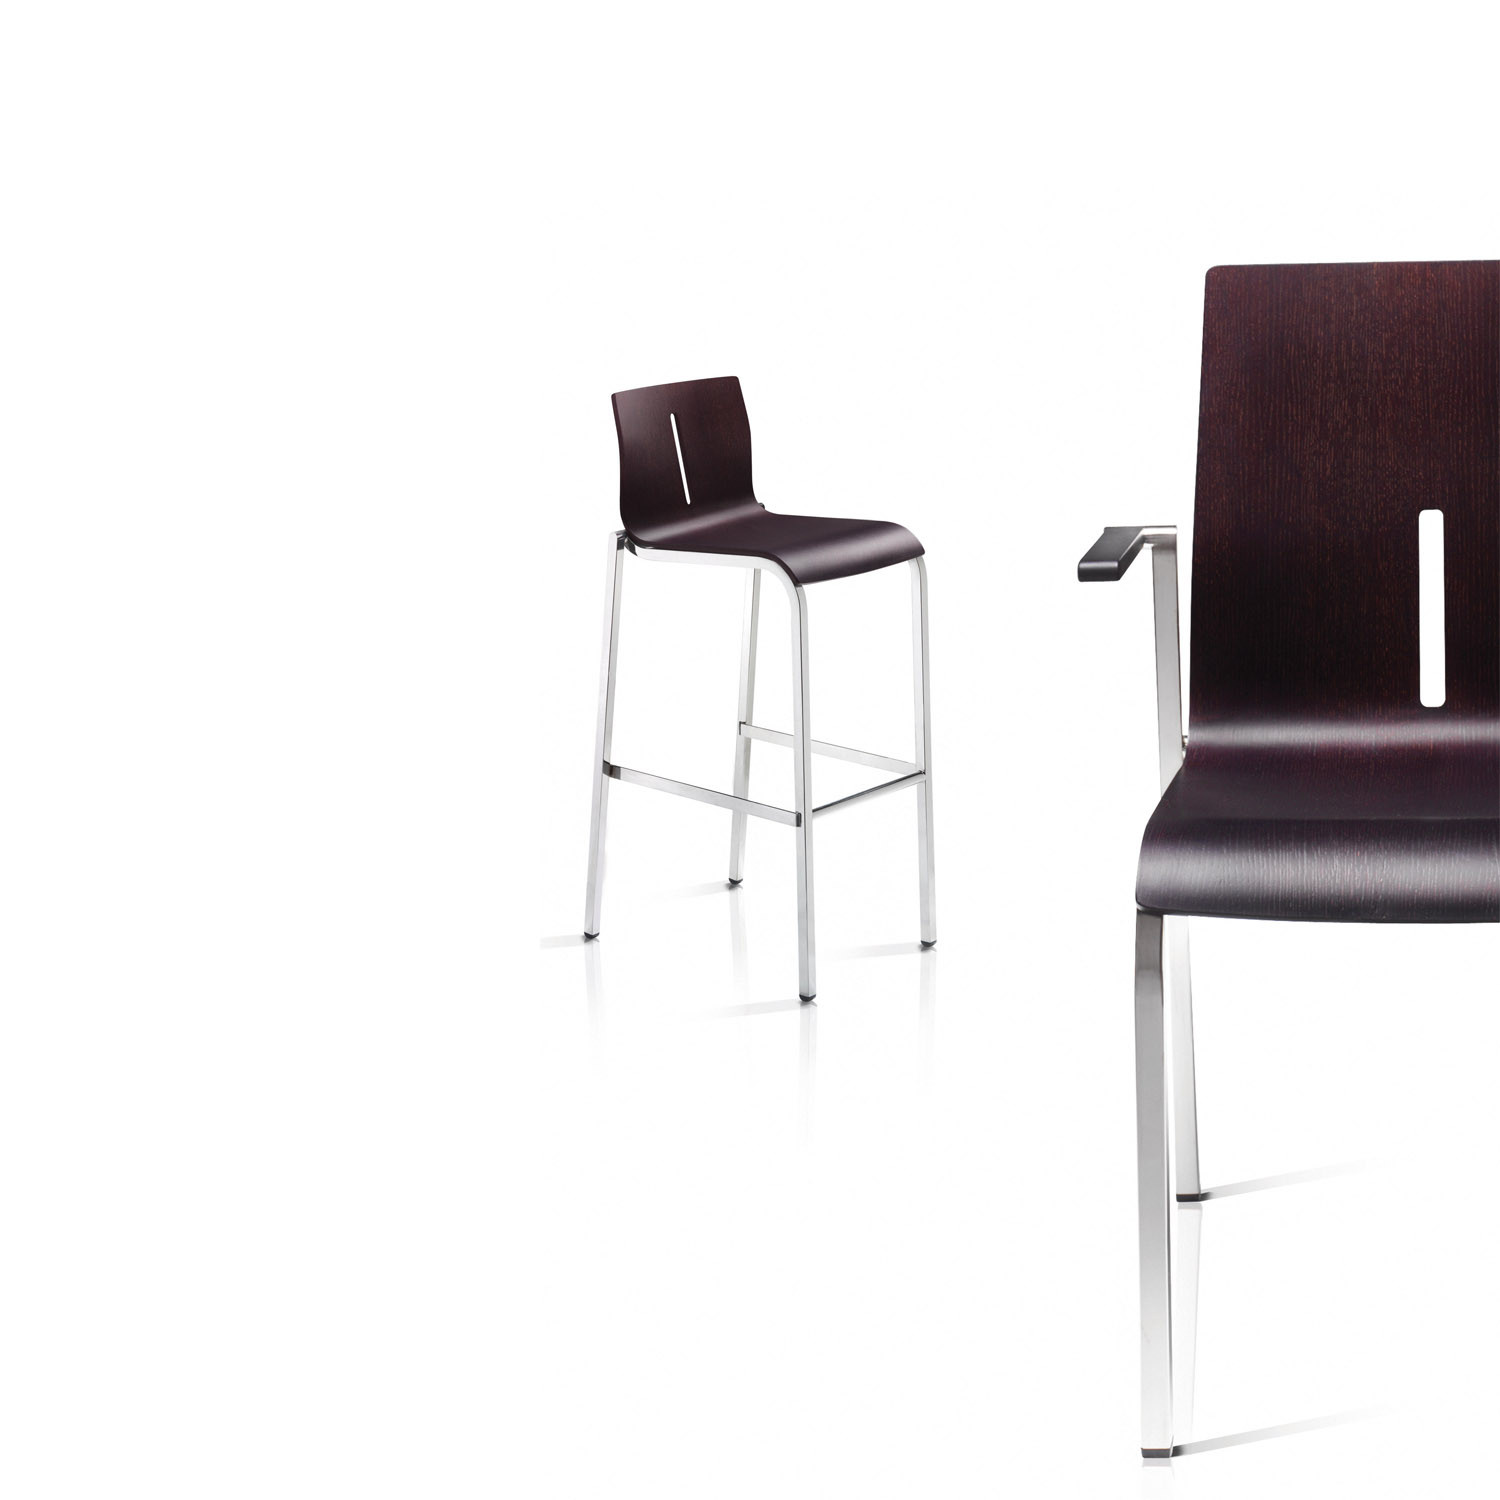 Vent Bar Stool and Vent Stacking Chair